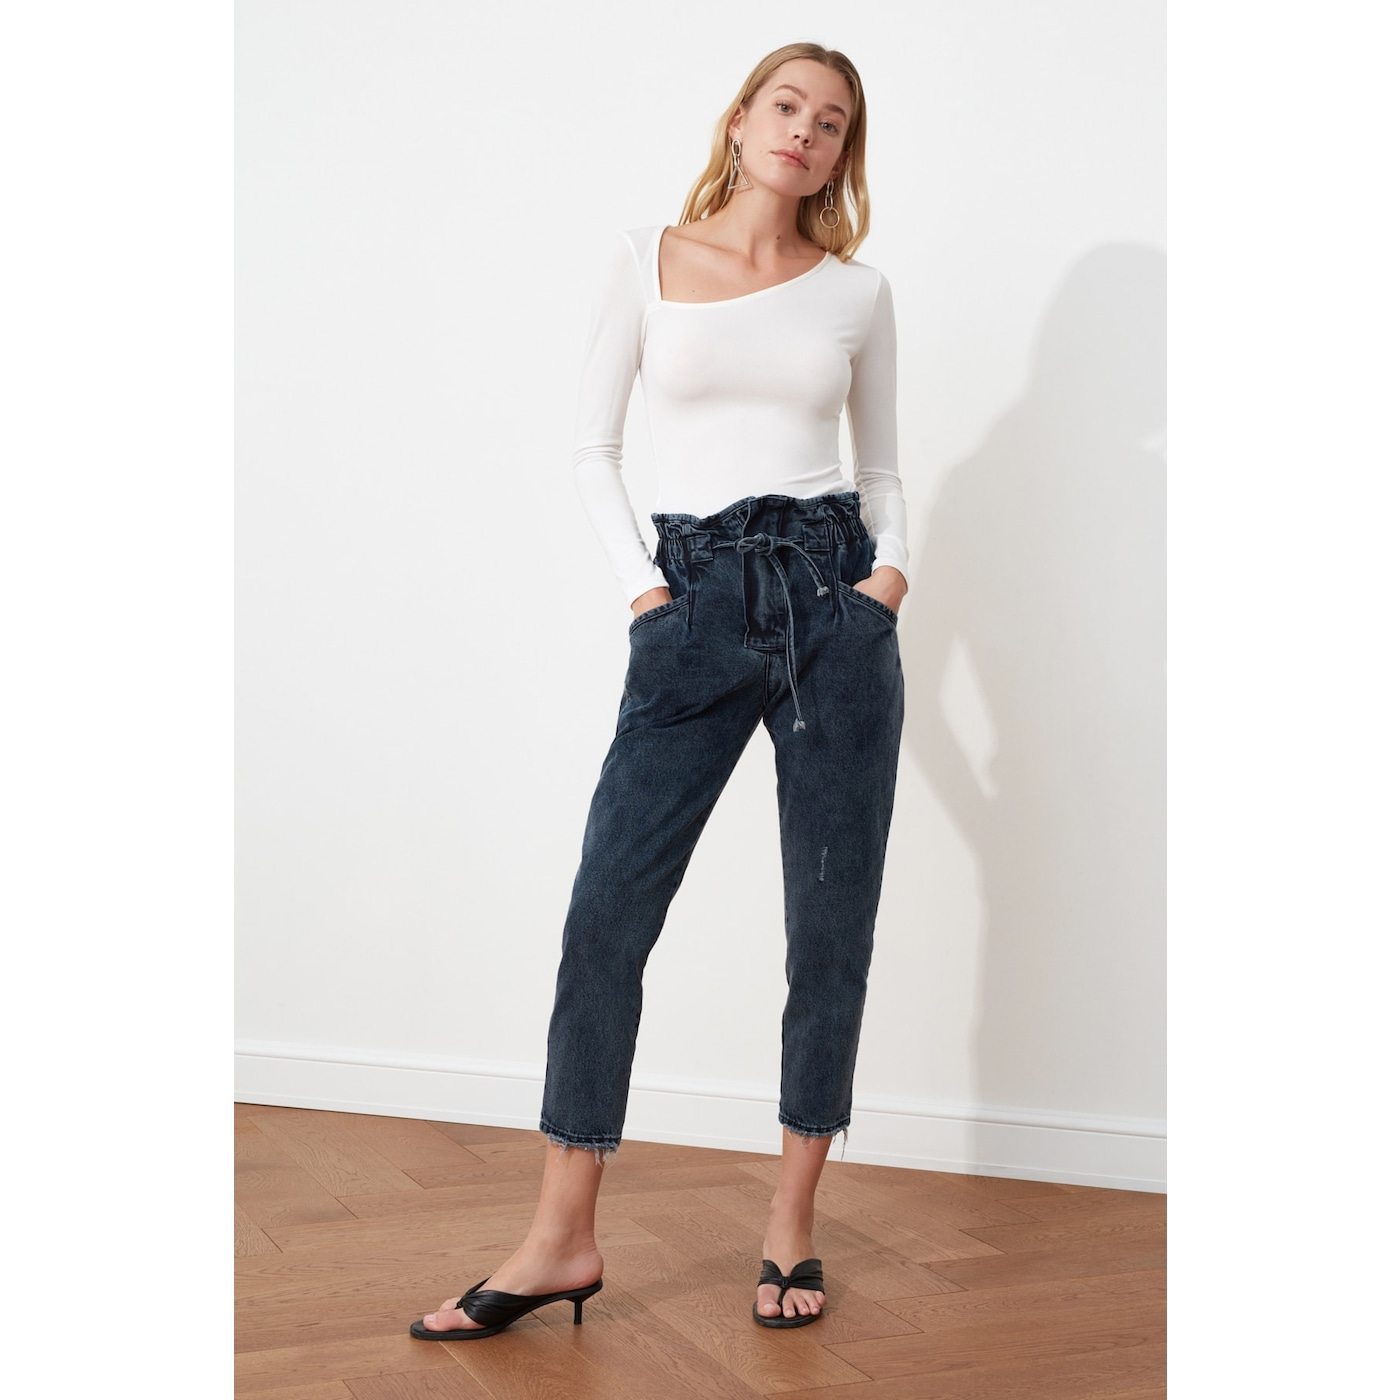 Trendyol Super High Waist Mom Jeans dámské Black 36